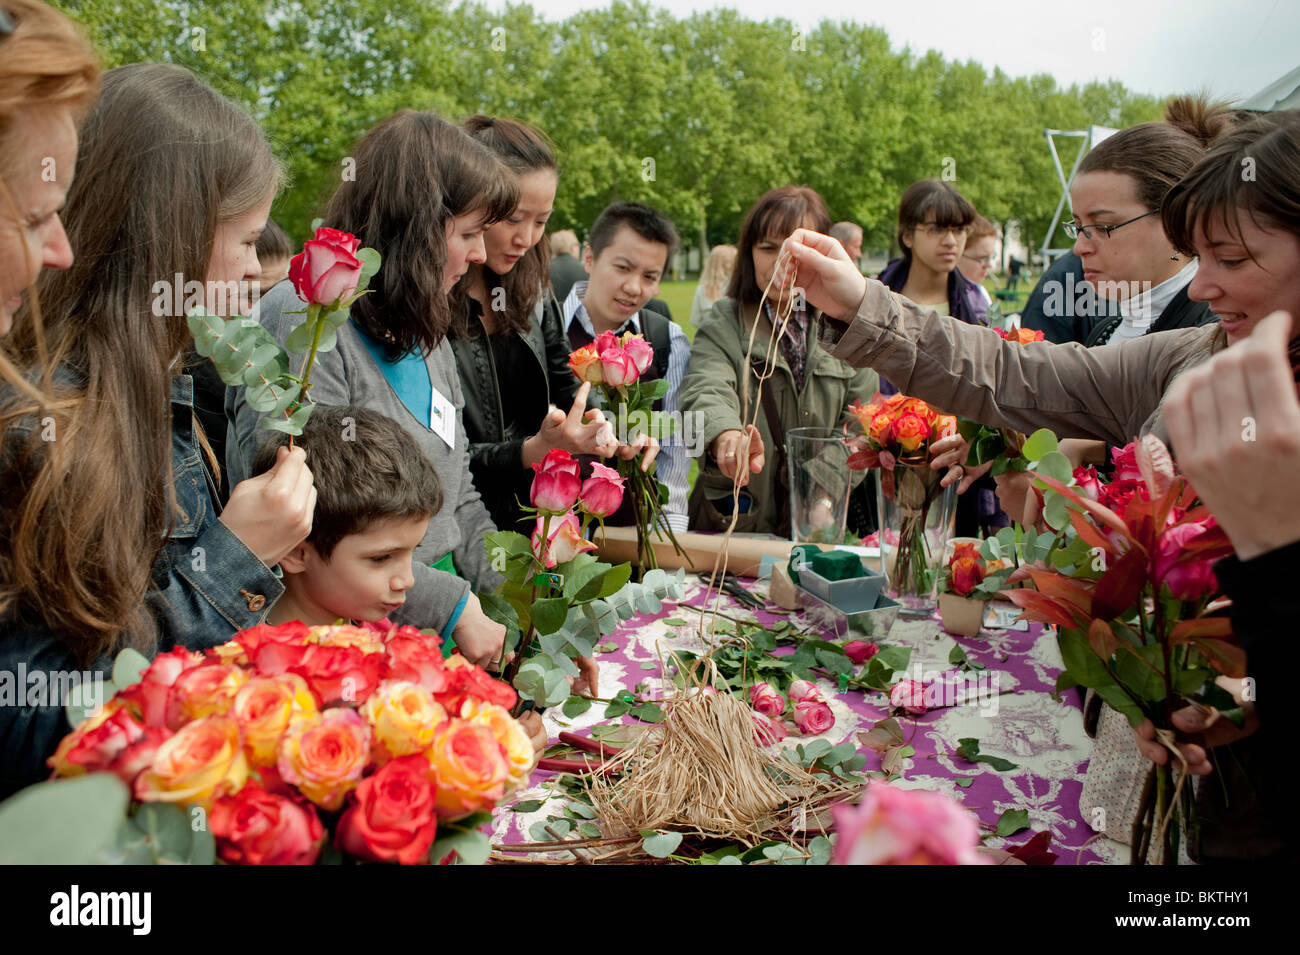 Crowd of People, Taking Roses at Florist Stall at Celebration of World 'Fair Trade' Day, La Villette Park, - Stock Image